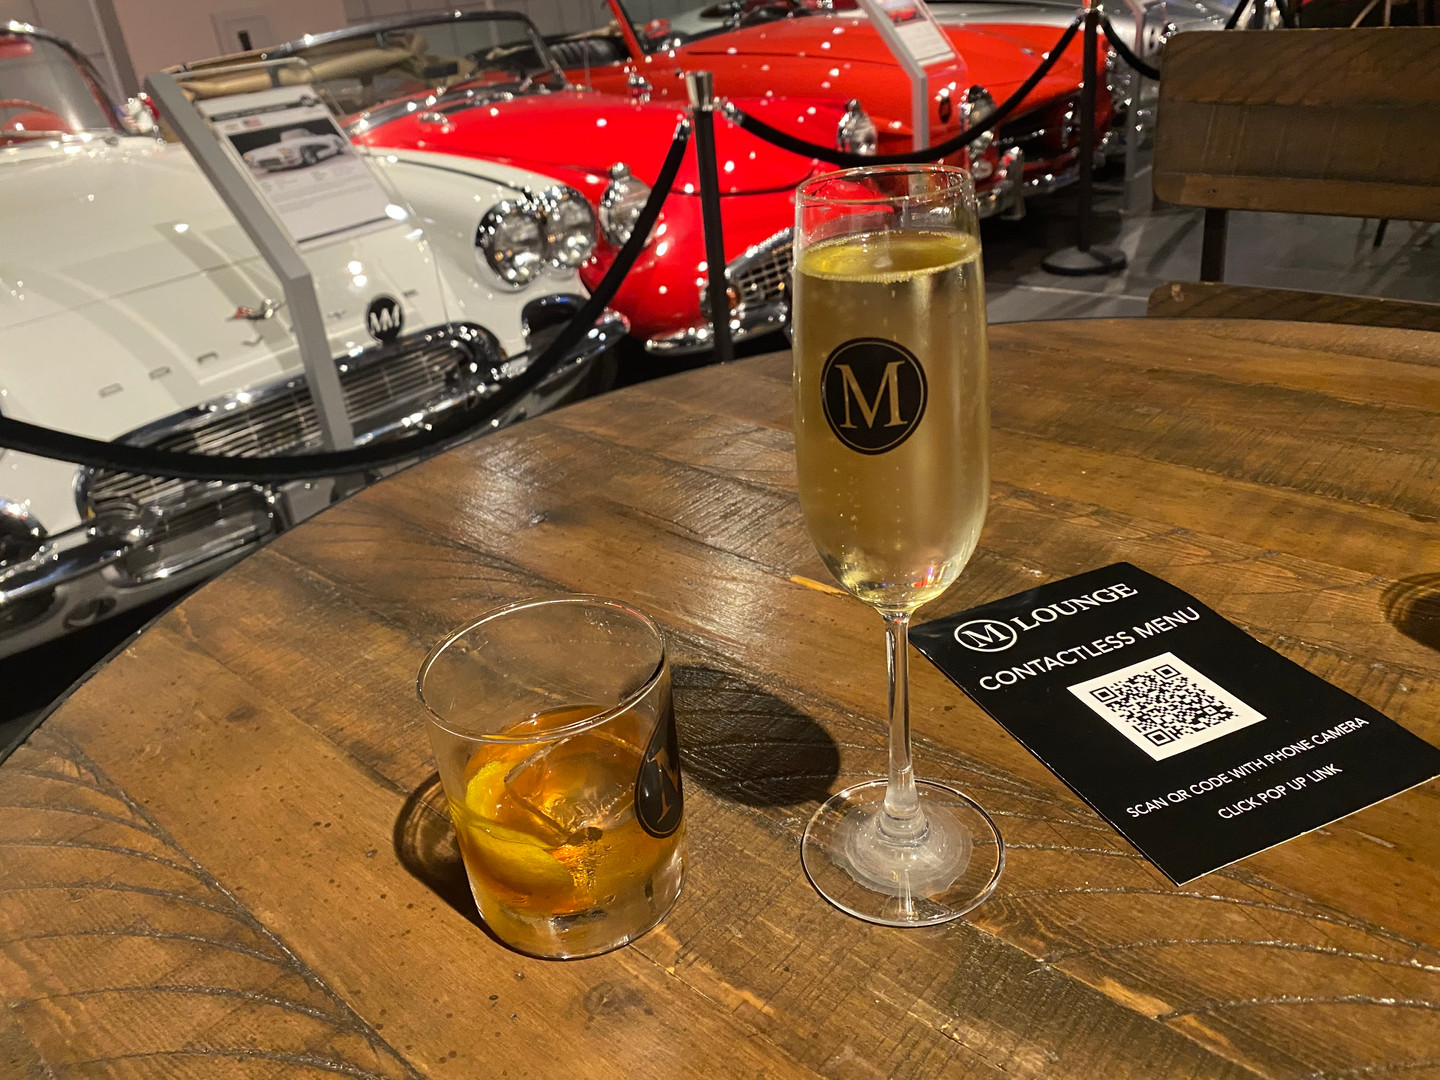 Enjoy a cocktail as you tour the museum